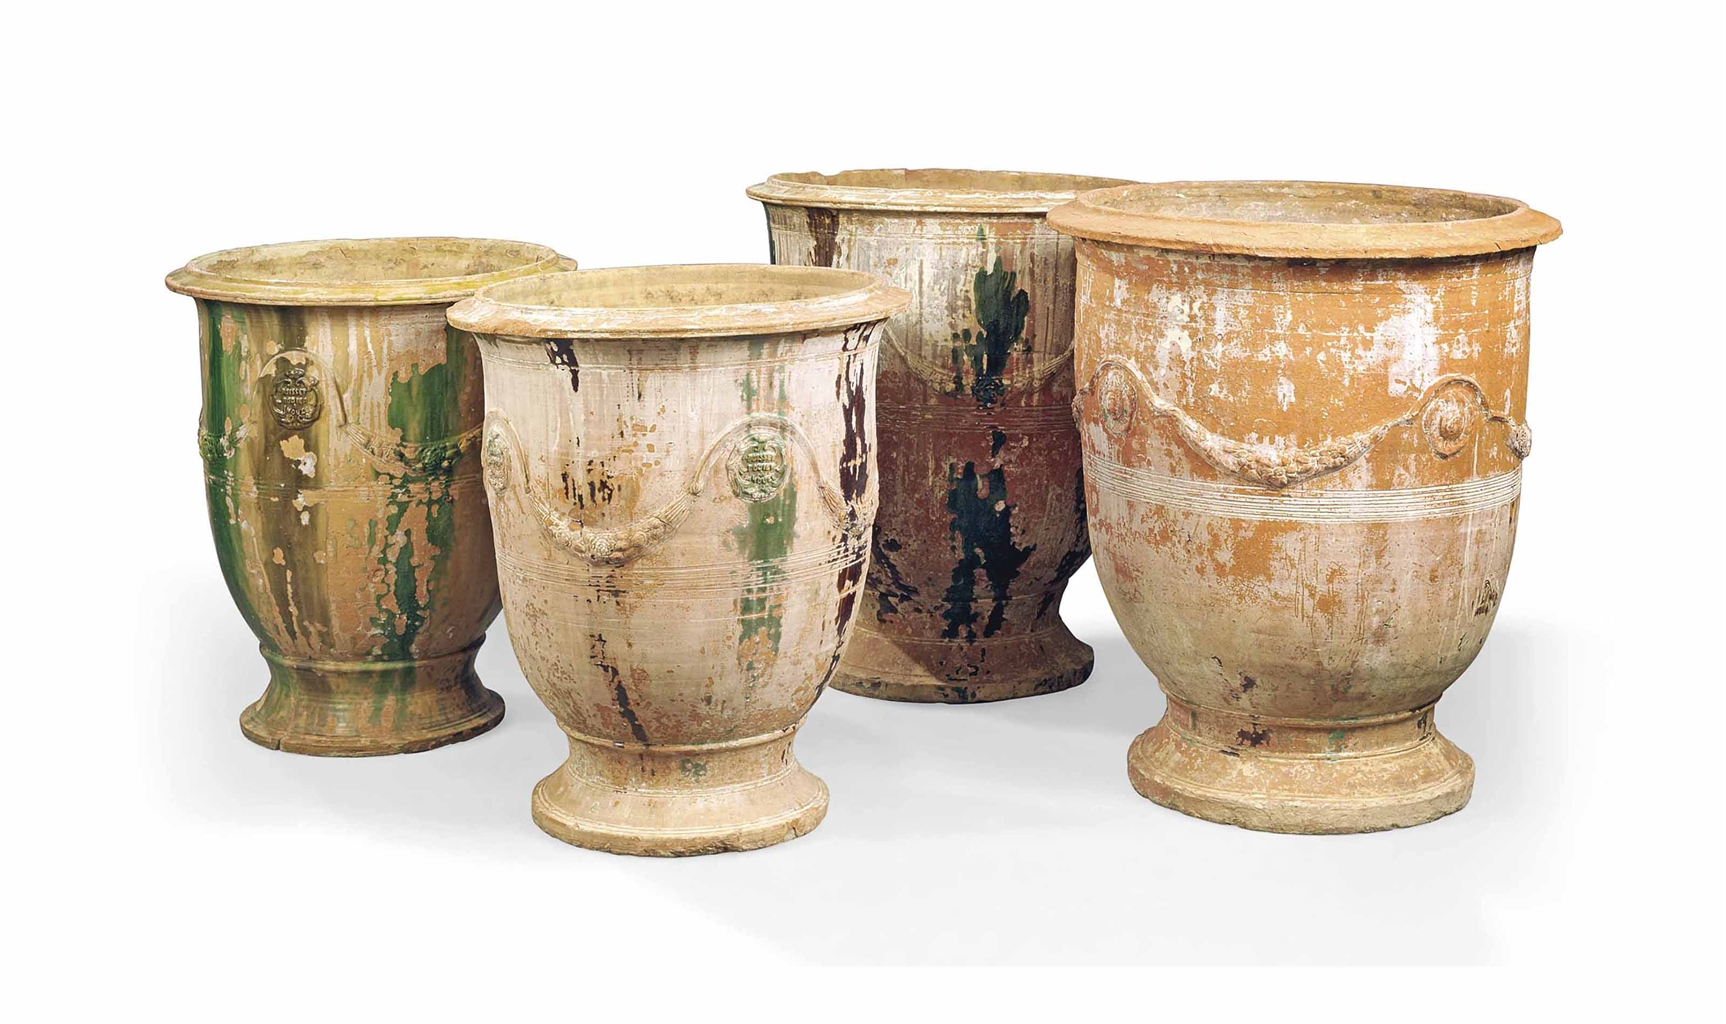 four french terracotta large pots by the boisset pottery at anduze 20th century all other. Black Bedroom Furniture Sets. Home Design Ideas